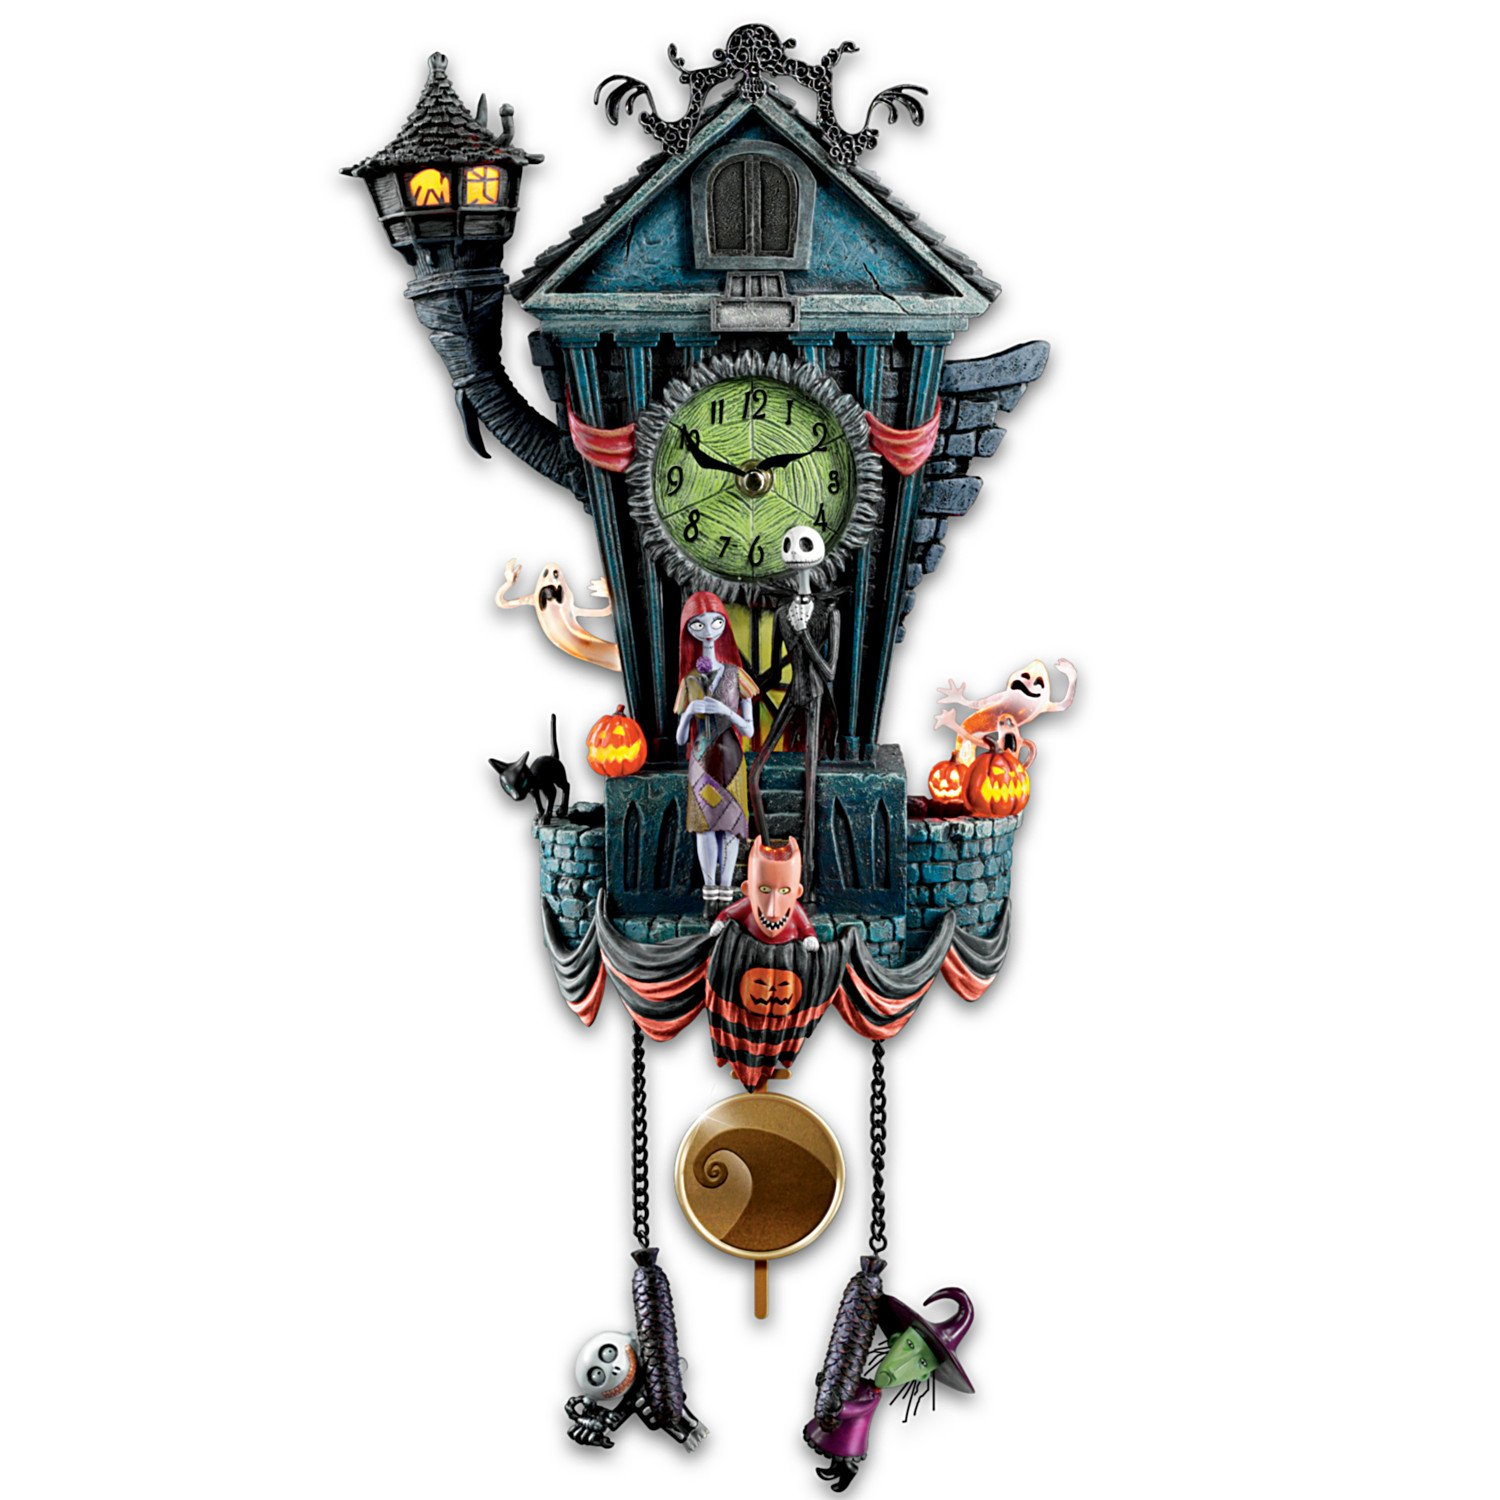 Bradford Exchange The Cuckoo Clock: Tim Burton's The Nightmare Before Christmas Wall Clock The Bradford Exchange 01-18084-001